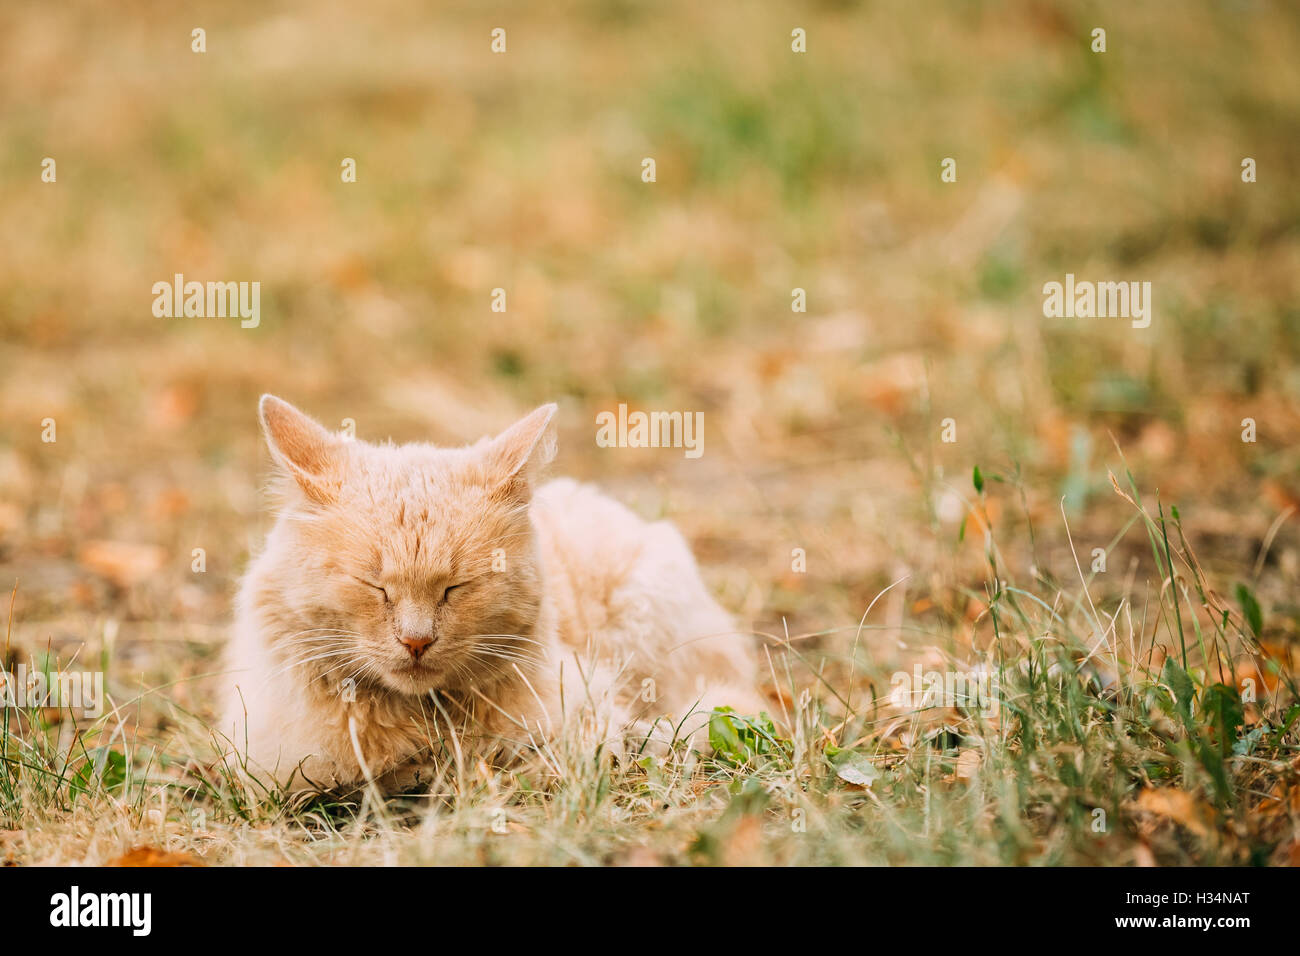 The Beige Peachy Mixed Breed Short-Haired Domestic Adult Cat, Sleeping Tucked Paws On The Yellowed Grass In The - Stock Image